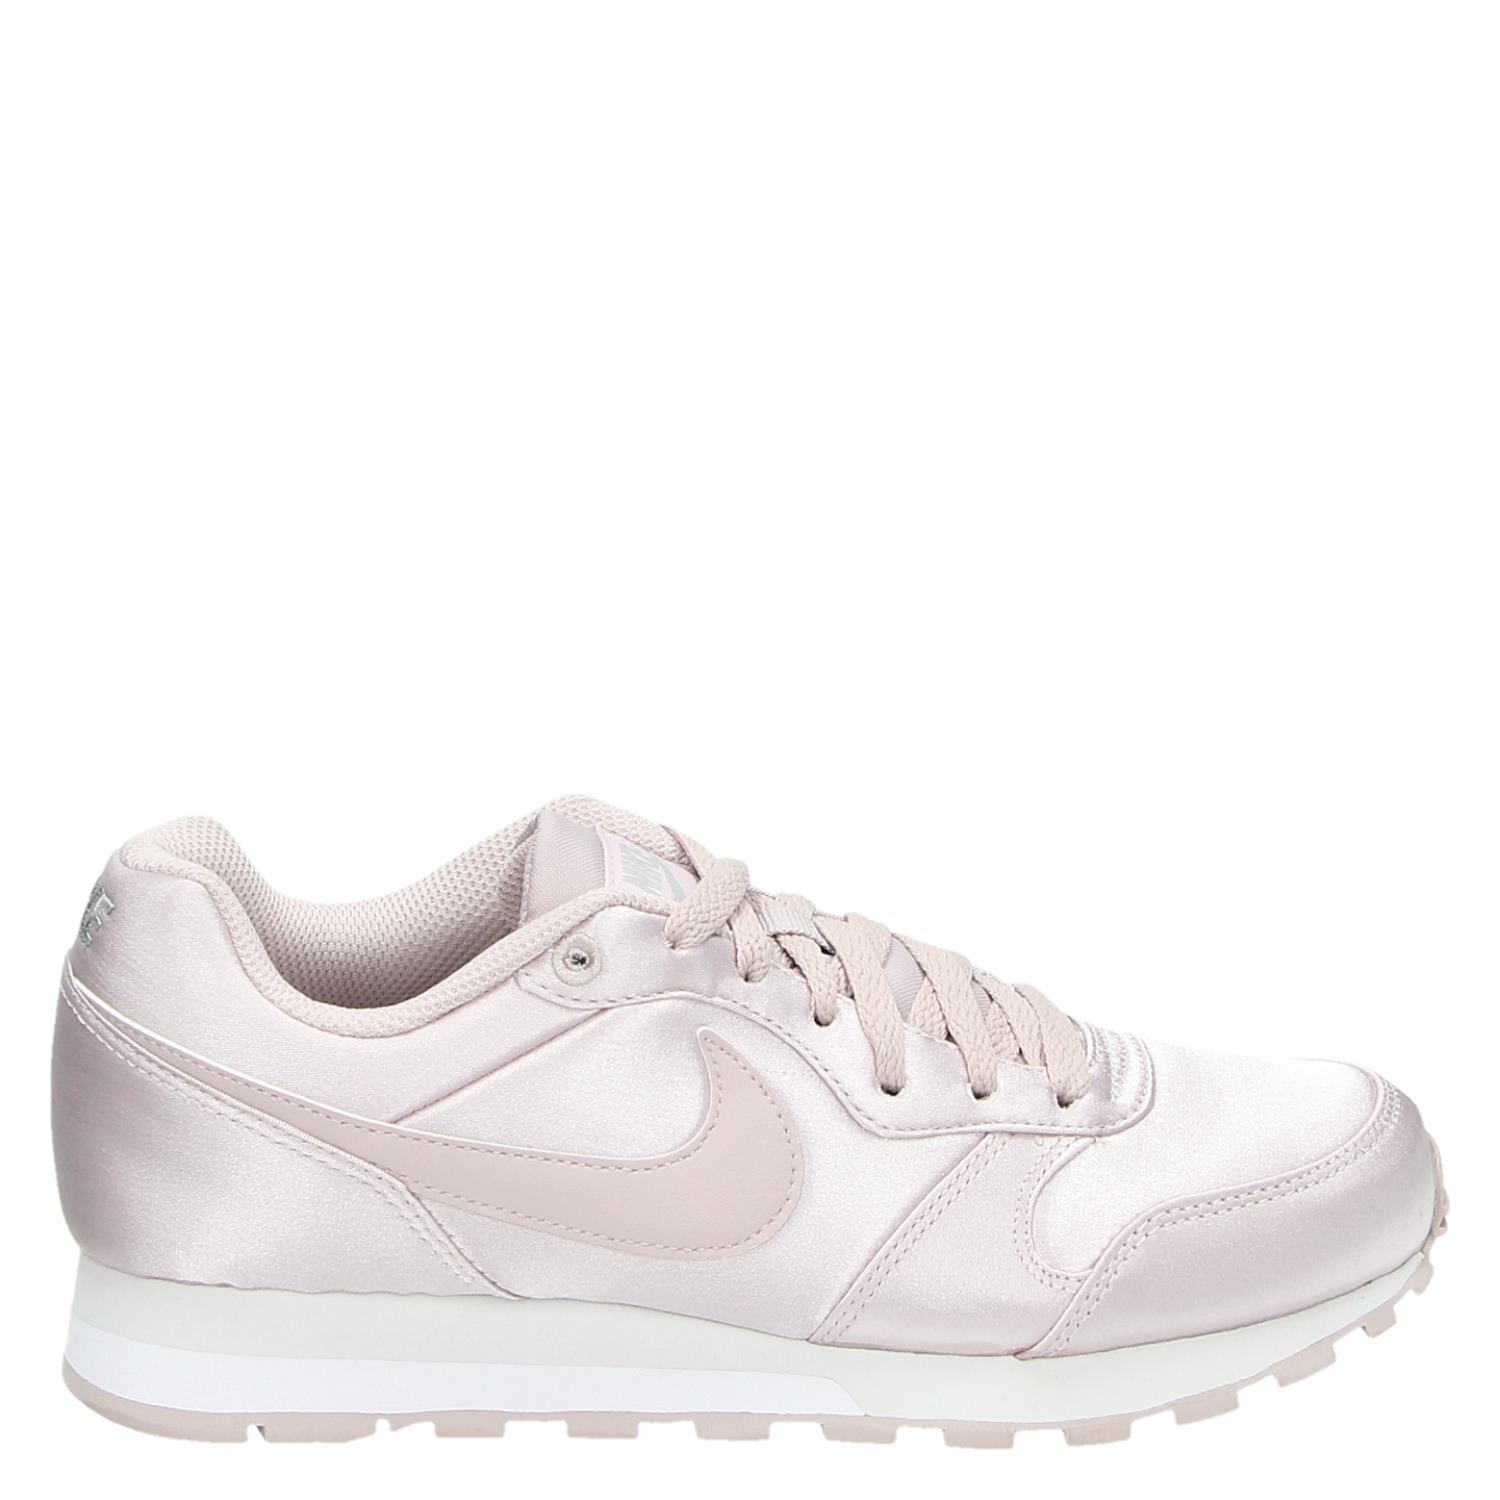 d5fb69926ff Nike MD Runner 2 dames lage sneakers roze